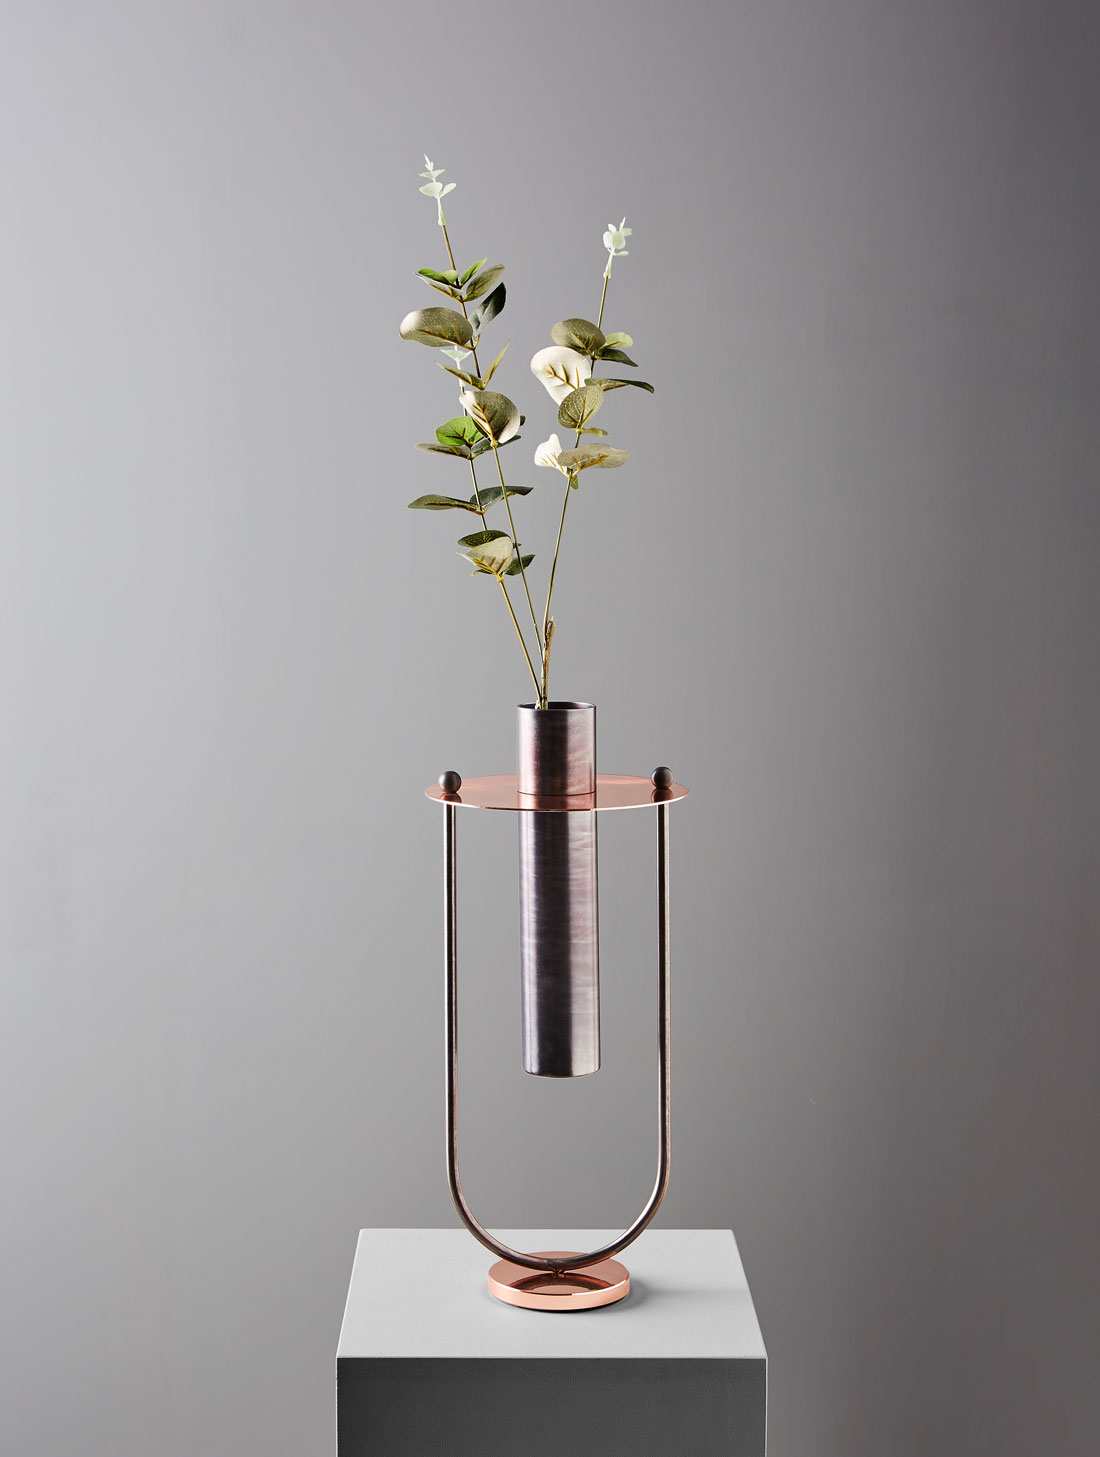 Vase_product design_Federica Biasi_Brass